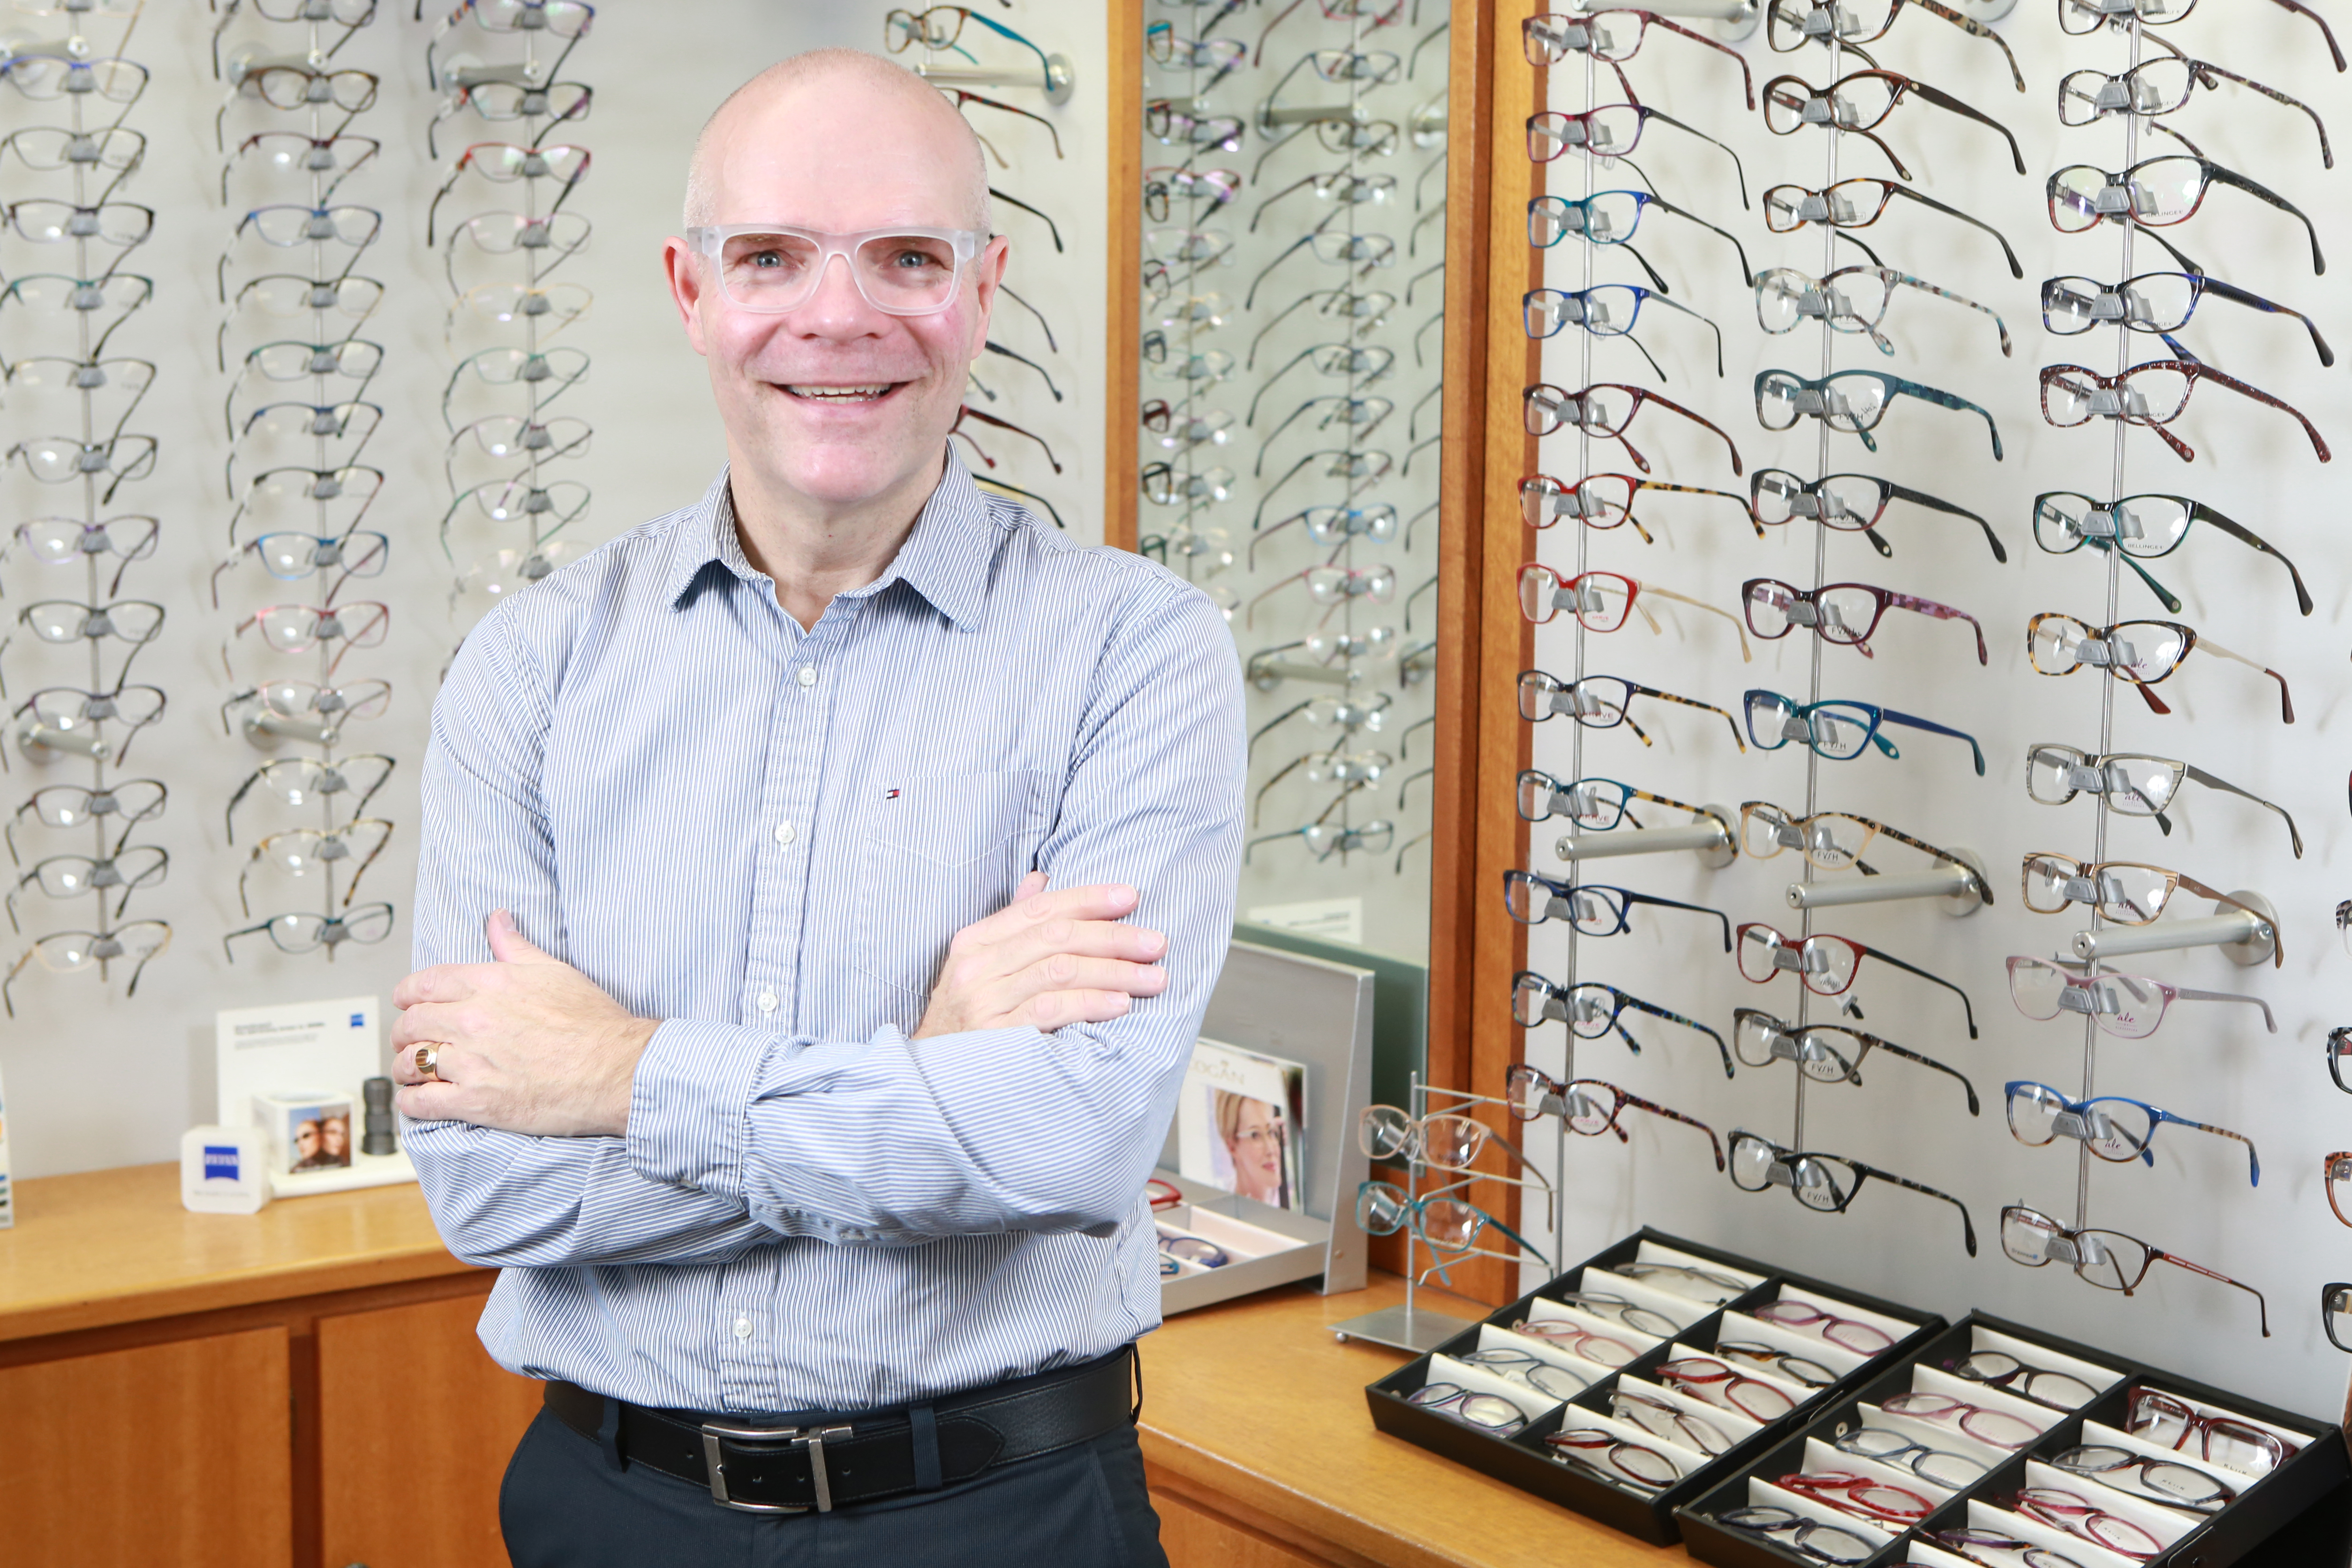 FRAMED: All in the family – Klein Optical looks back on 25 years in the business